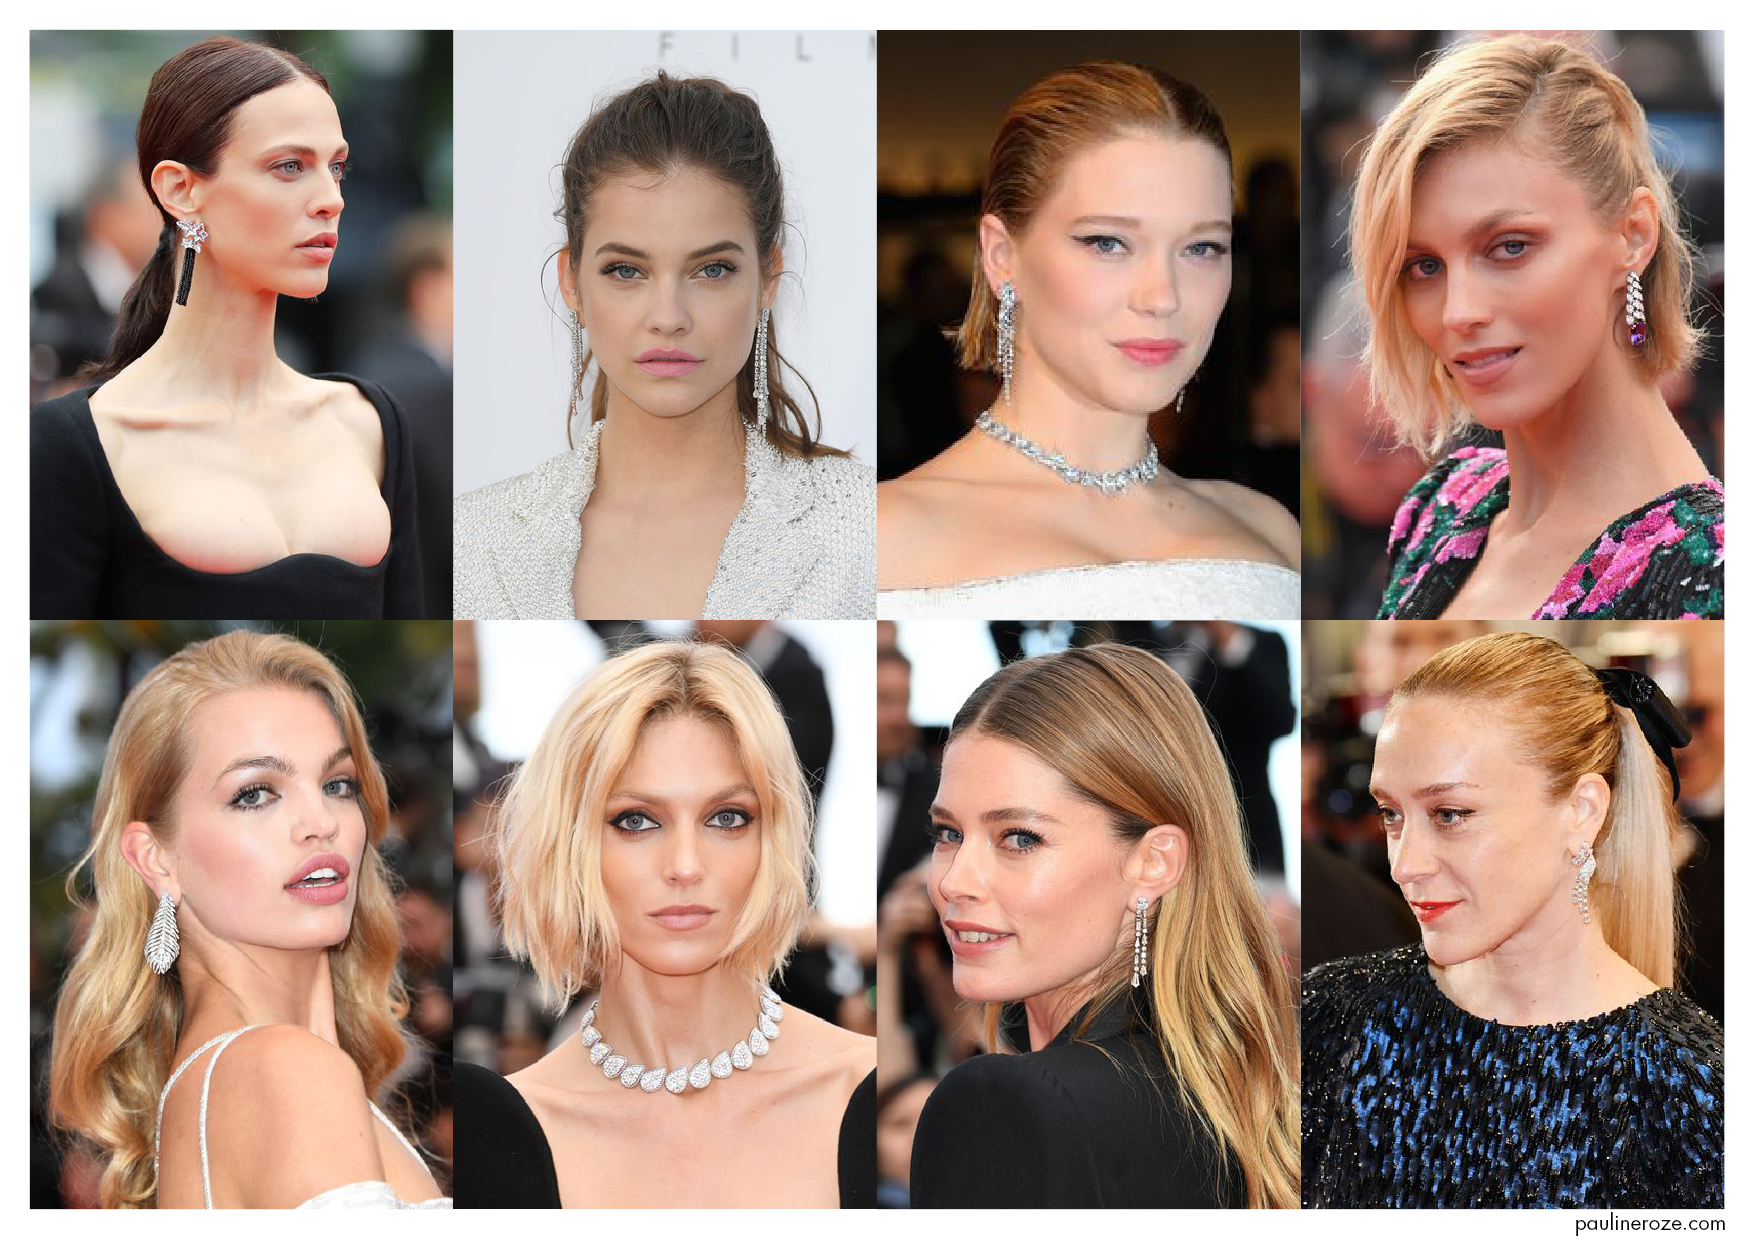 From Top to Bottom, Left to Right:  Aymeline Valade in Boucheron, Babara Palvin in Messika, Léa Seydoux in Boucheron, Anja Rubik in Boucheron, Daphne Groeneveld in Boucheron, Anja Rubik in Boucheron, Doutzen Kroes in Piaget, Chloë Sevigny in Chanel Joaillerie.